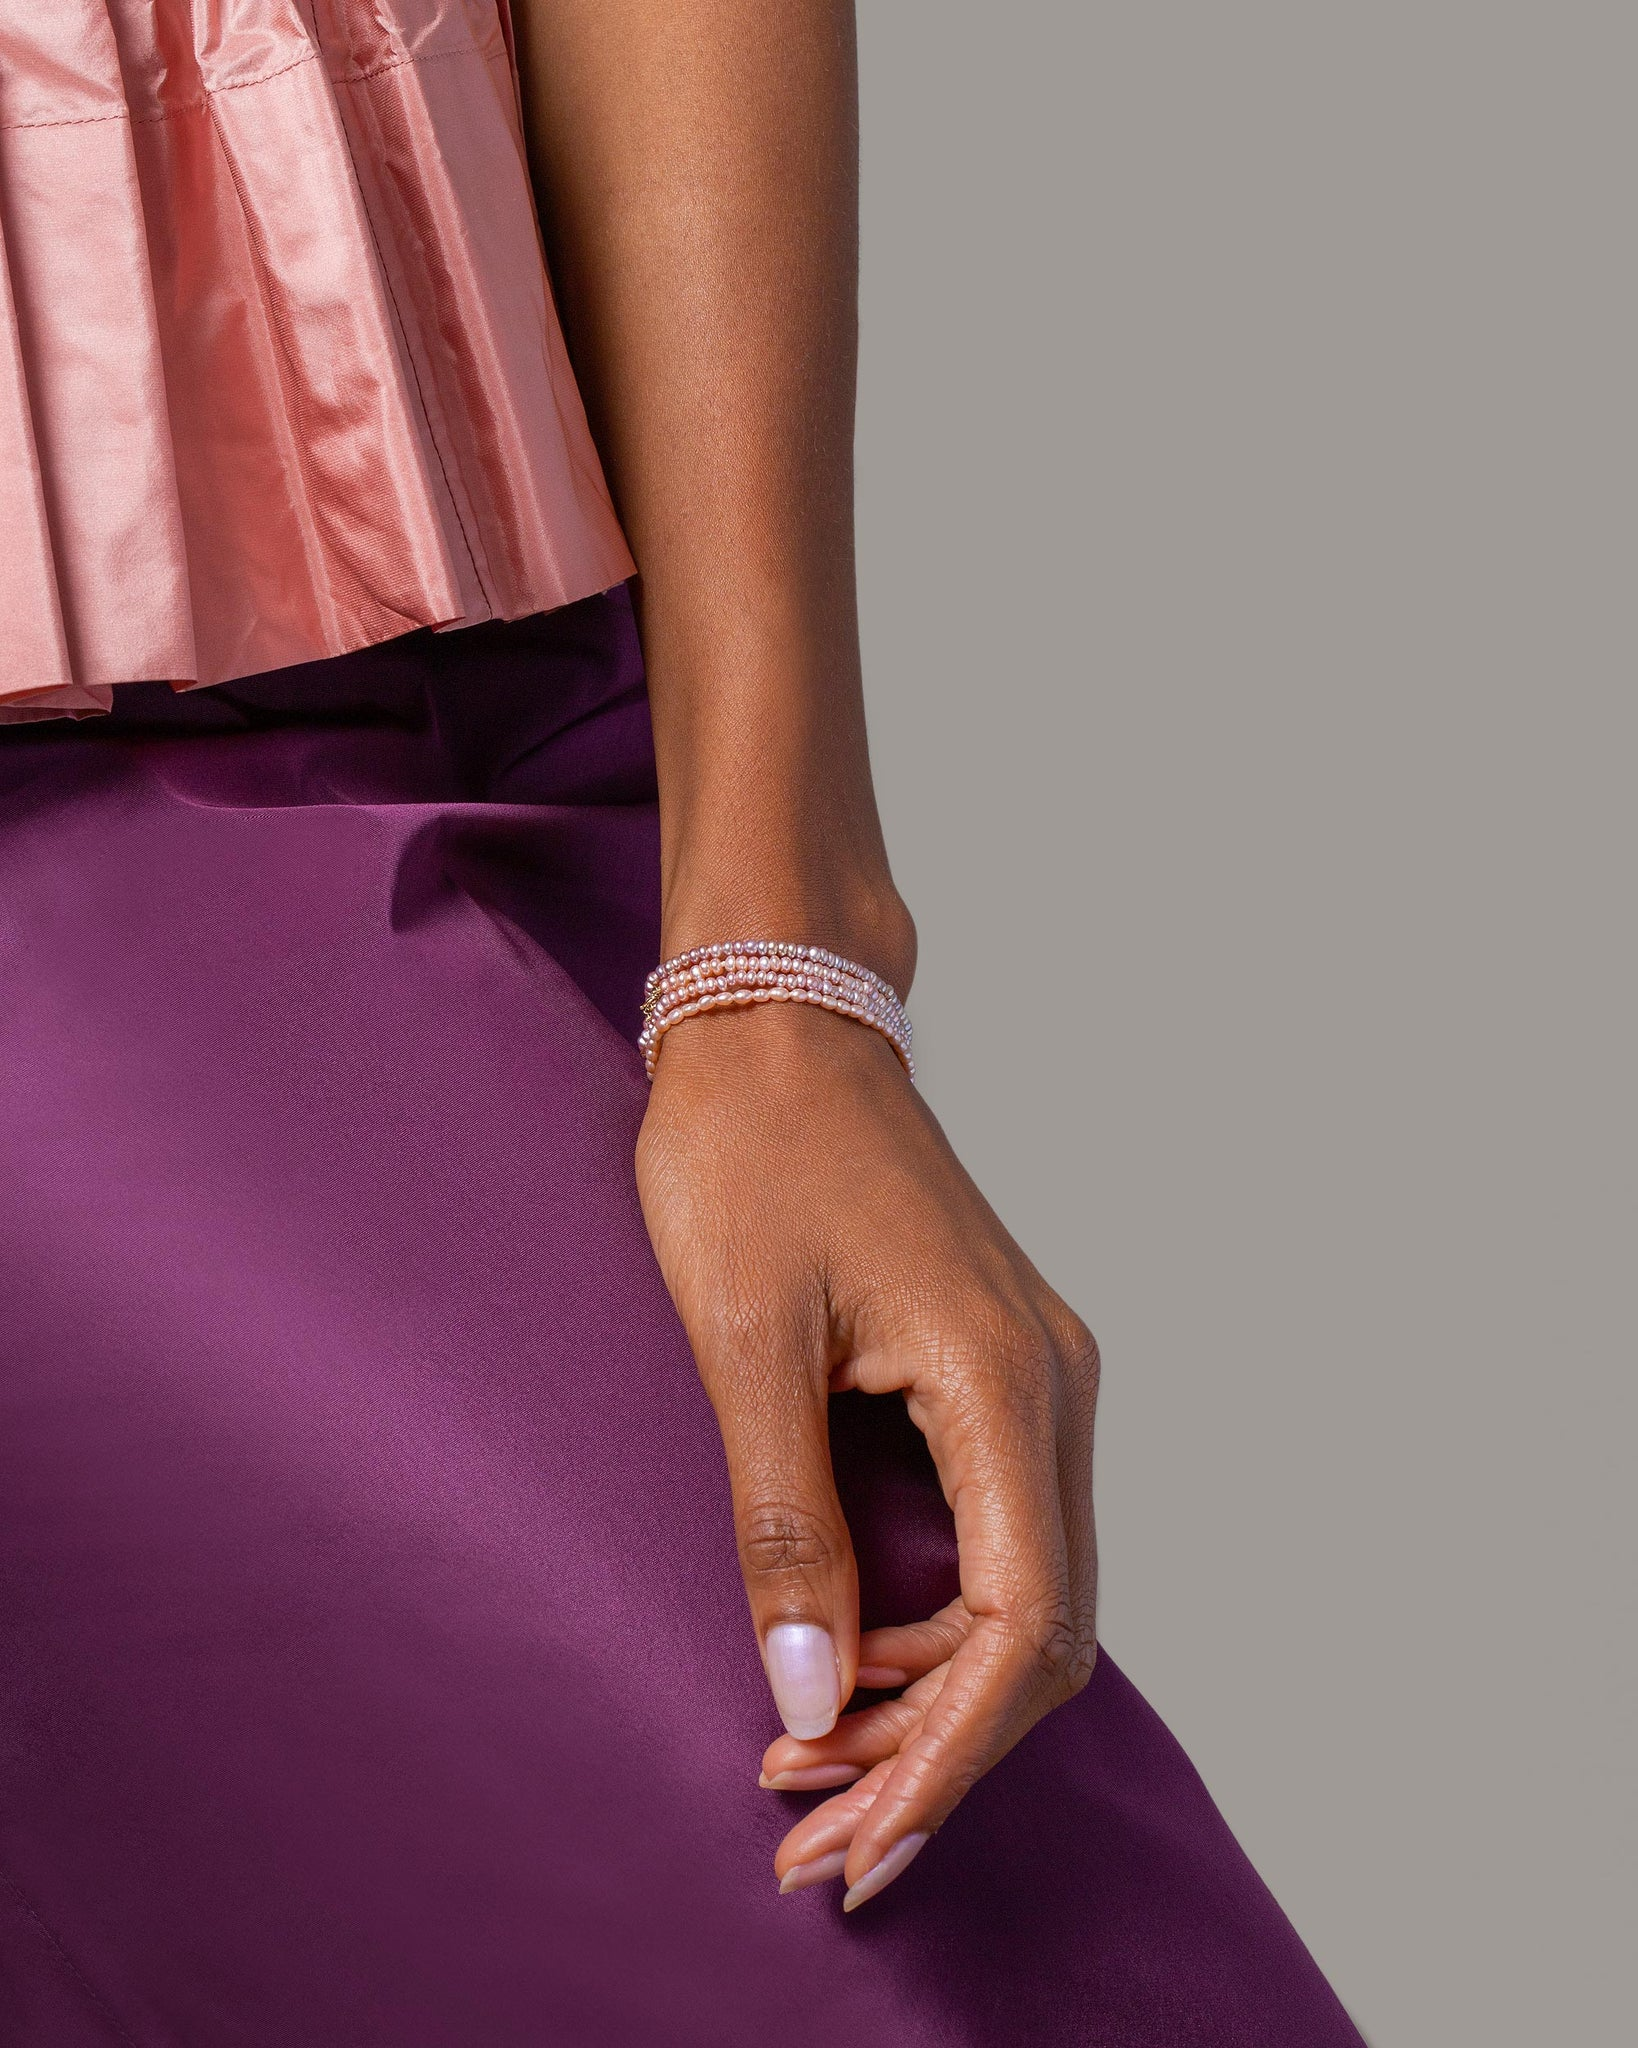 Pink and Lavender seed pearl bracelets worn on model